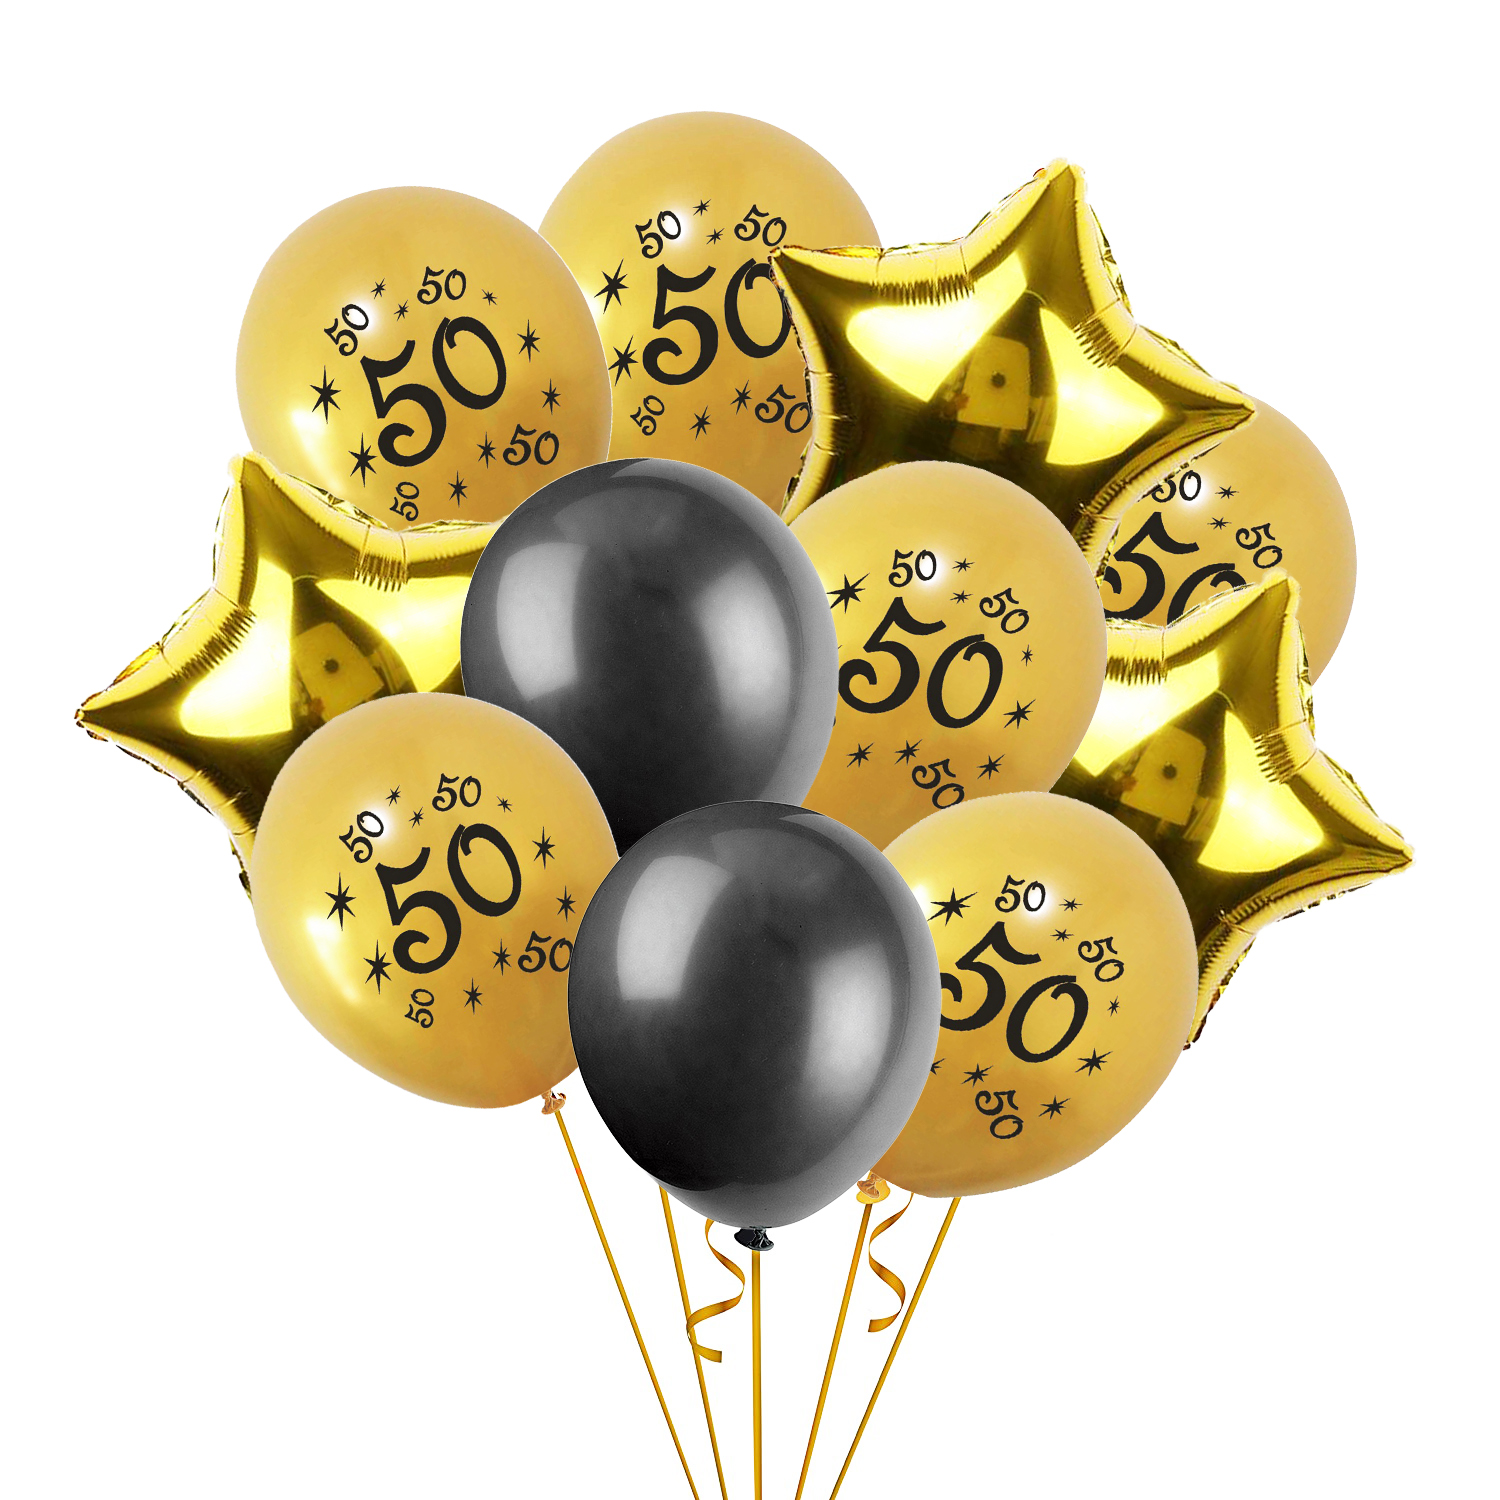 Cheers Adults 50th Birthday Party Supplies Set Gold Foil Globos 20pcs Latex Balloons Happy 50 Years Old Decoration 75D In Ballons Accessories